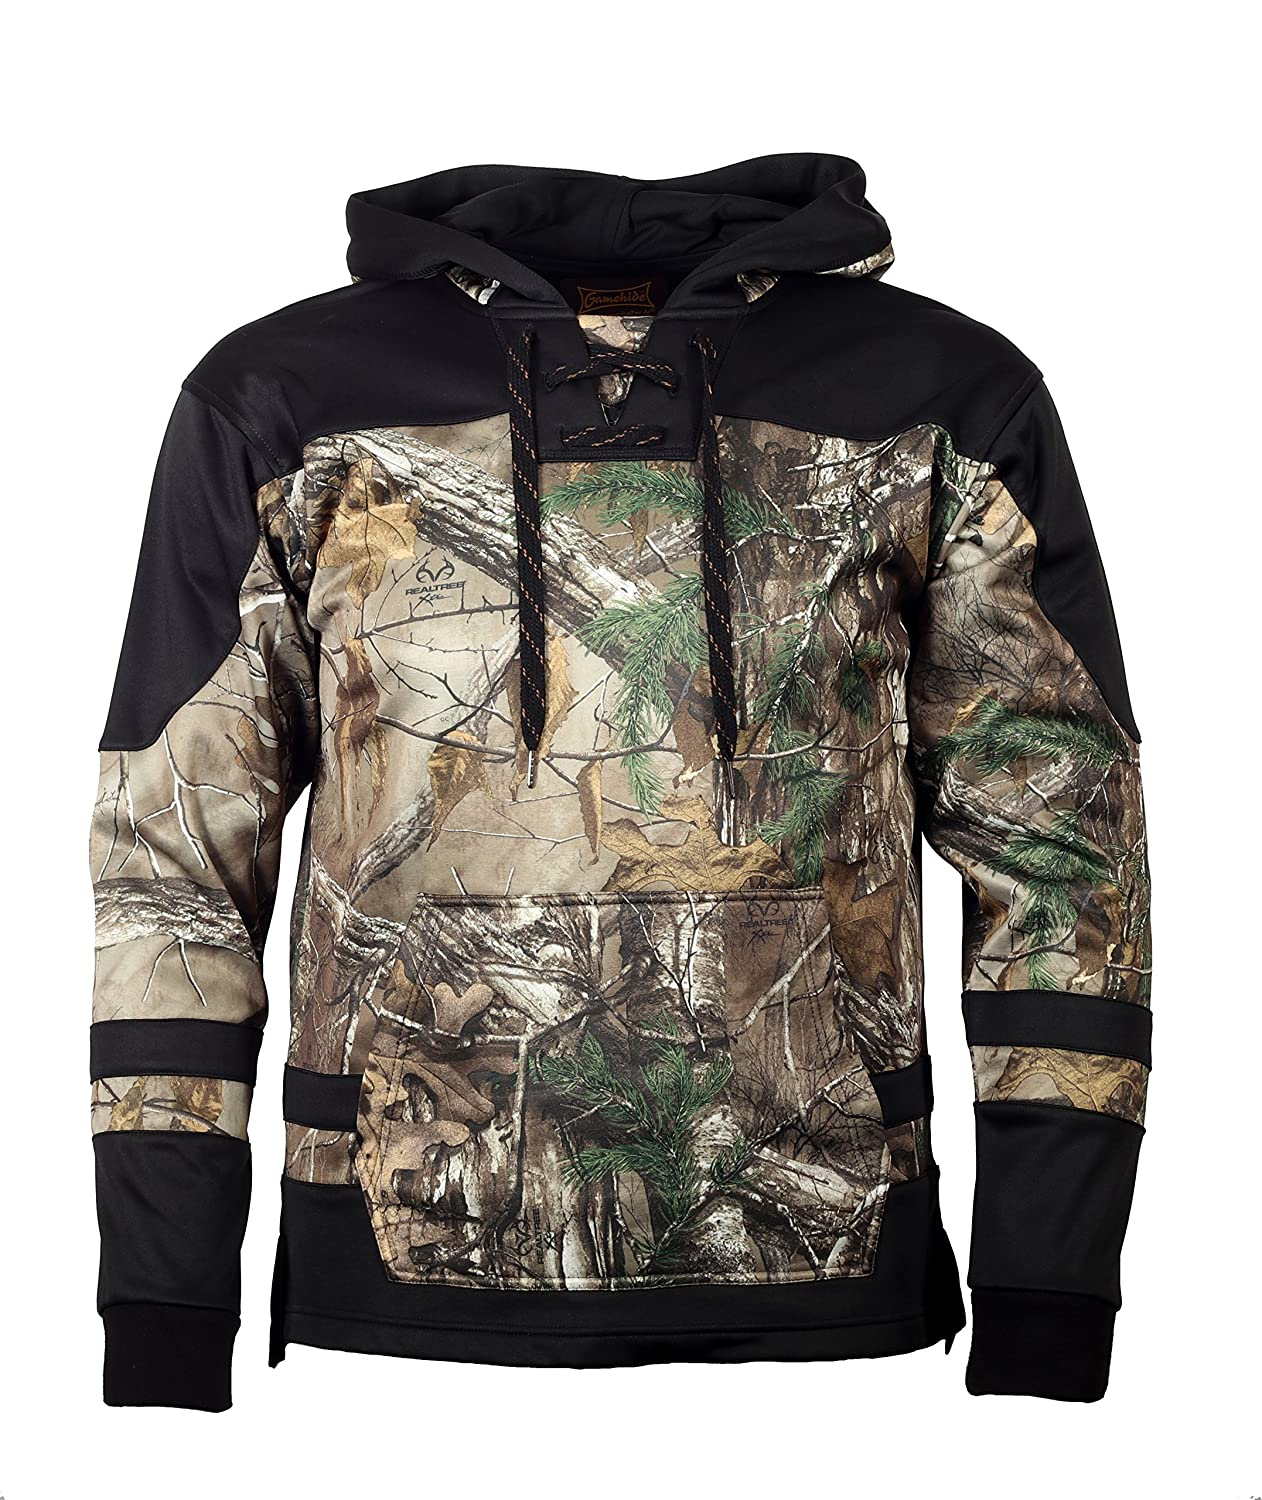 Overtime Camo Hockey Hoodie with Laces by Gamehide Medium Realtree Xttra / Black B077YXZX49